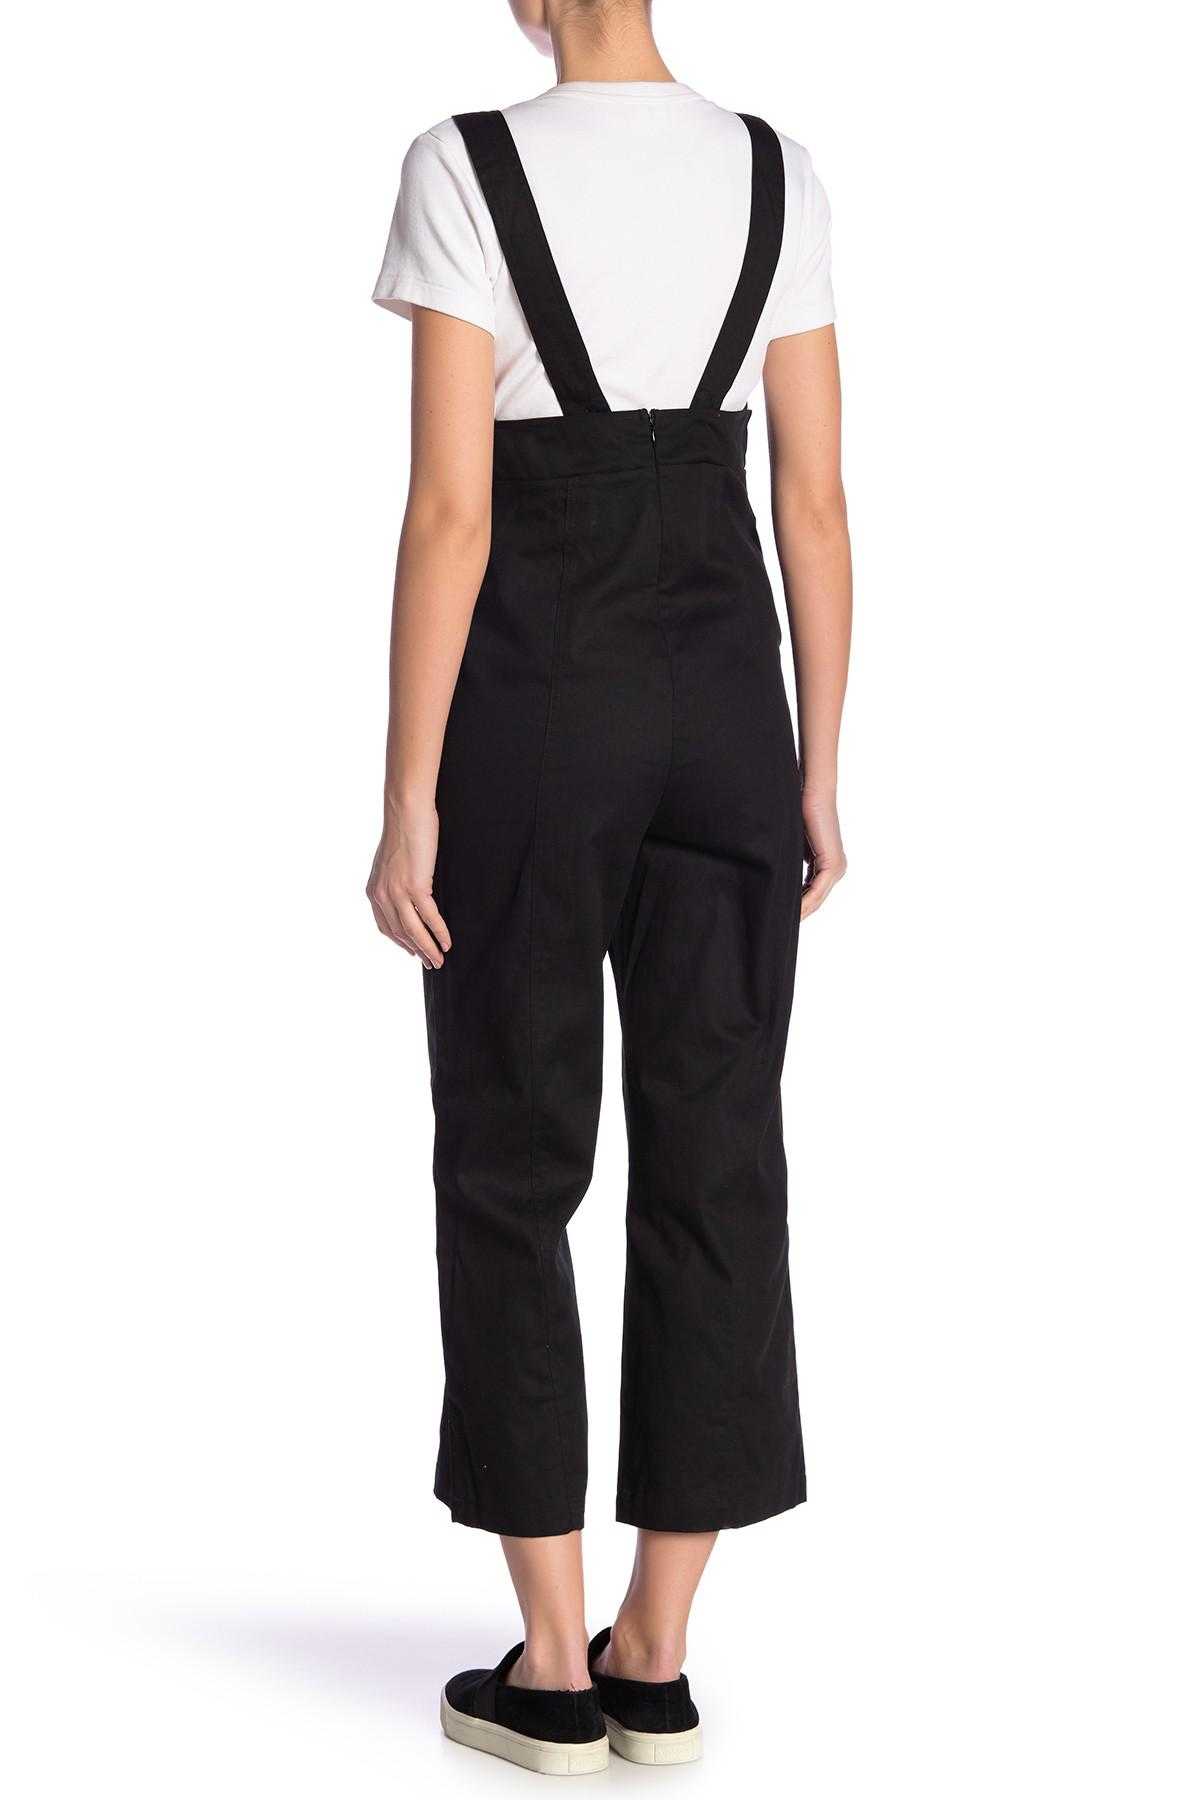 f48d6e28b7a9 Lyst - Lucca Couture Fitted Overalls in Black